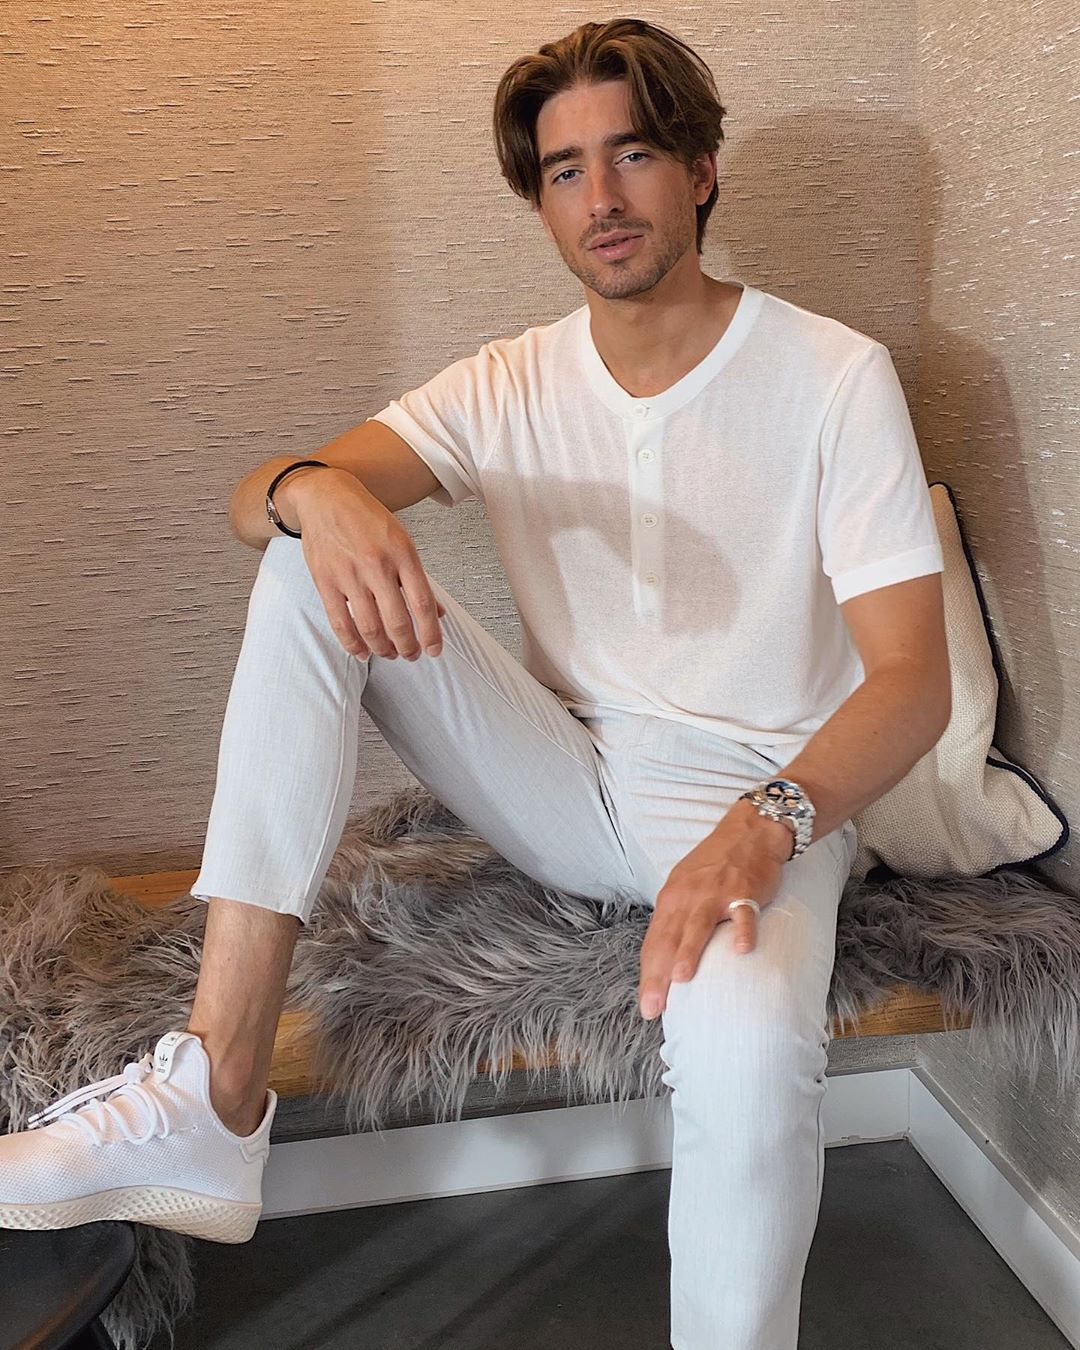 Image may contain: Made in Chelsea fake followers, Made in Chelsea, MIC, cast, Instagram, fake, followers, real, Harry Baron, comments, likes, Human, Person, Shoe, Footwear, Apparel, Clothing